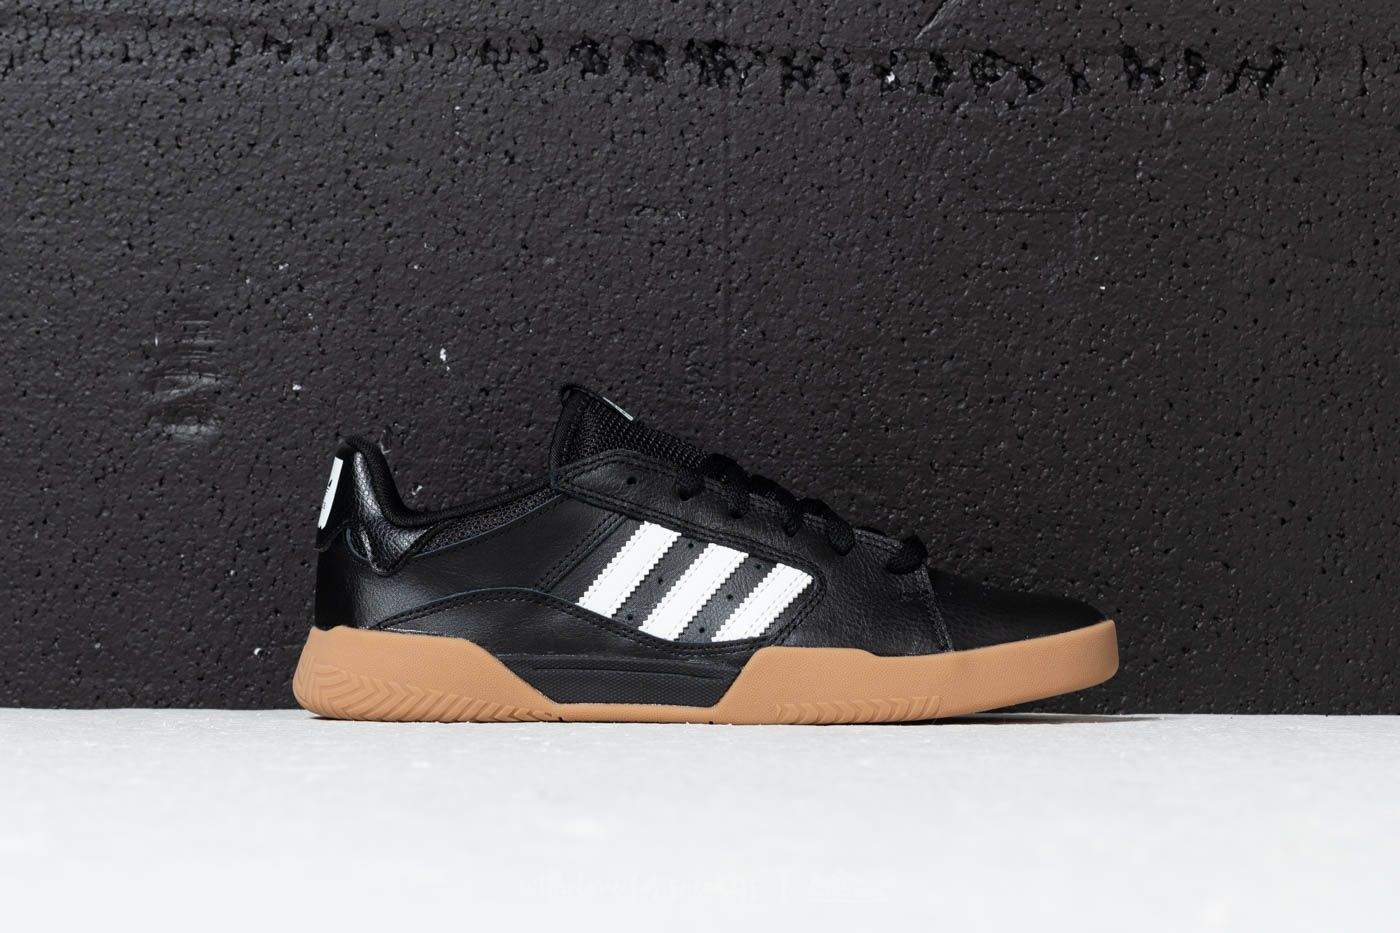 442a84cc4d278 adidas VRX Low Core Black  Ftw White  Gum 4 at a great price £